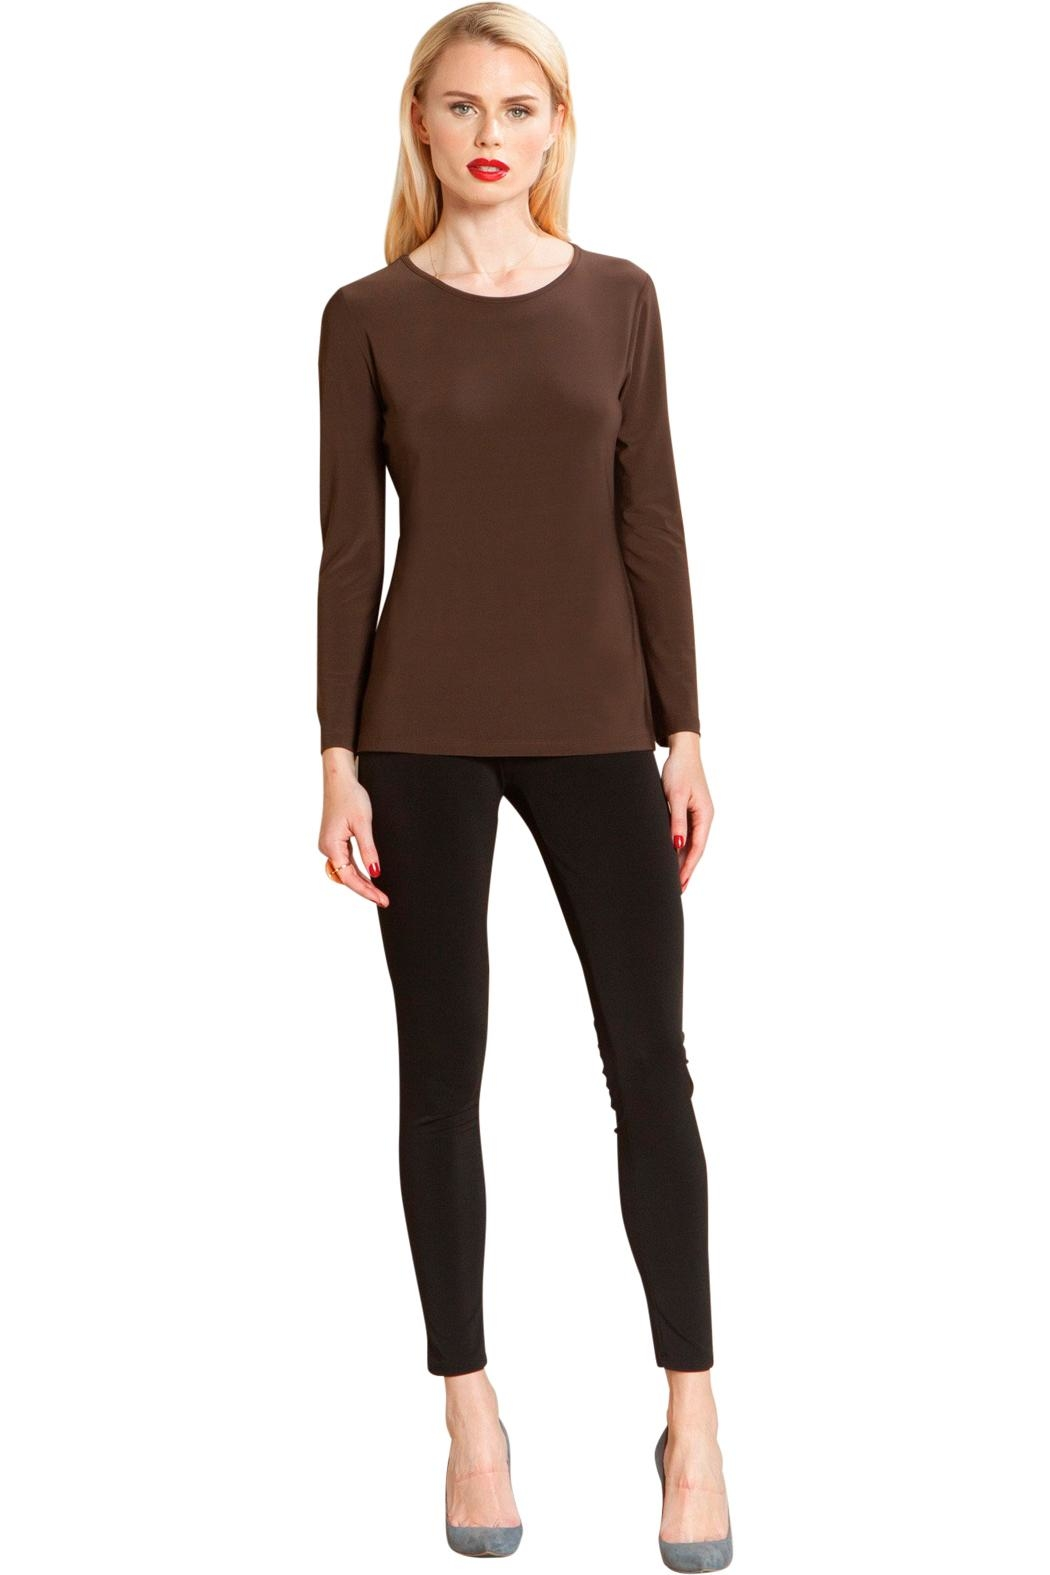 Clara Sunwoo Brown Scoopneck Top - Front Cropped Image